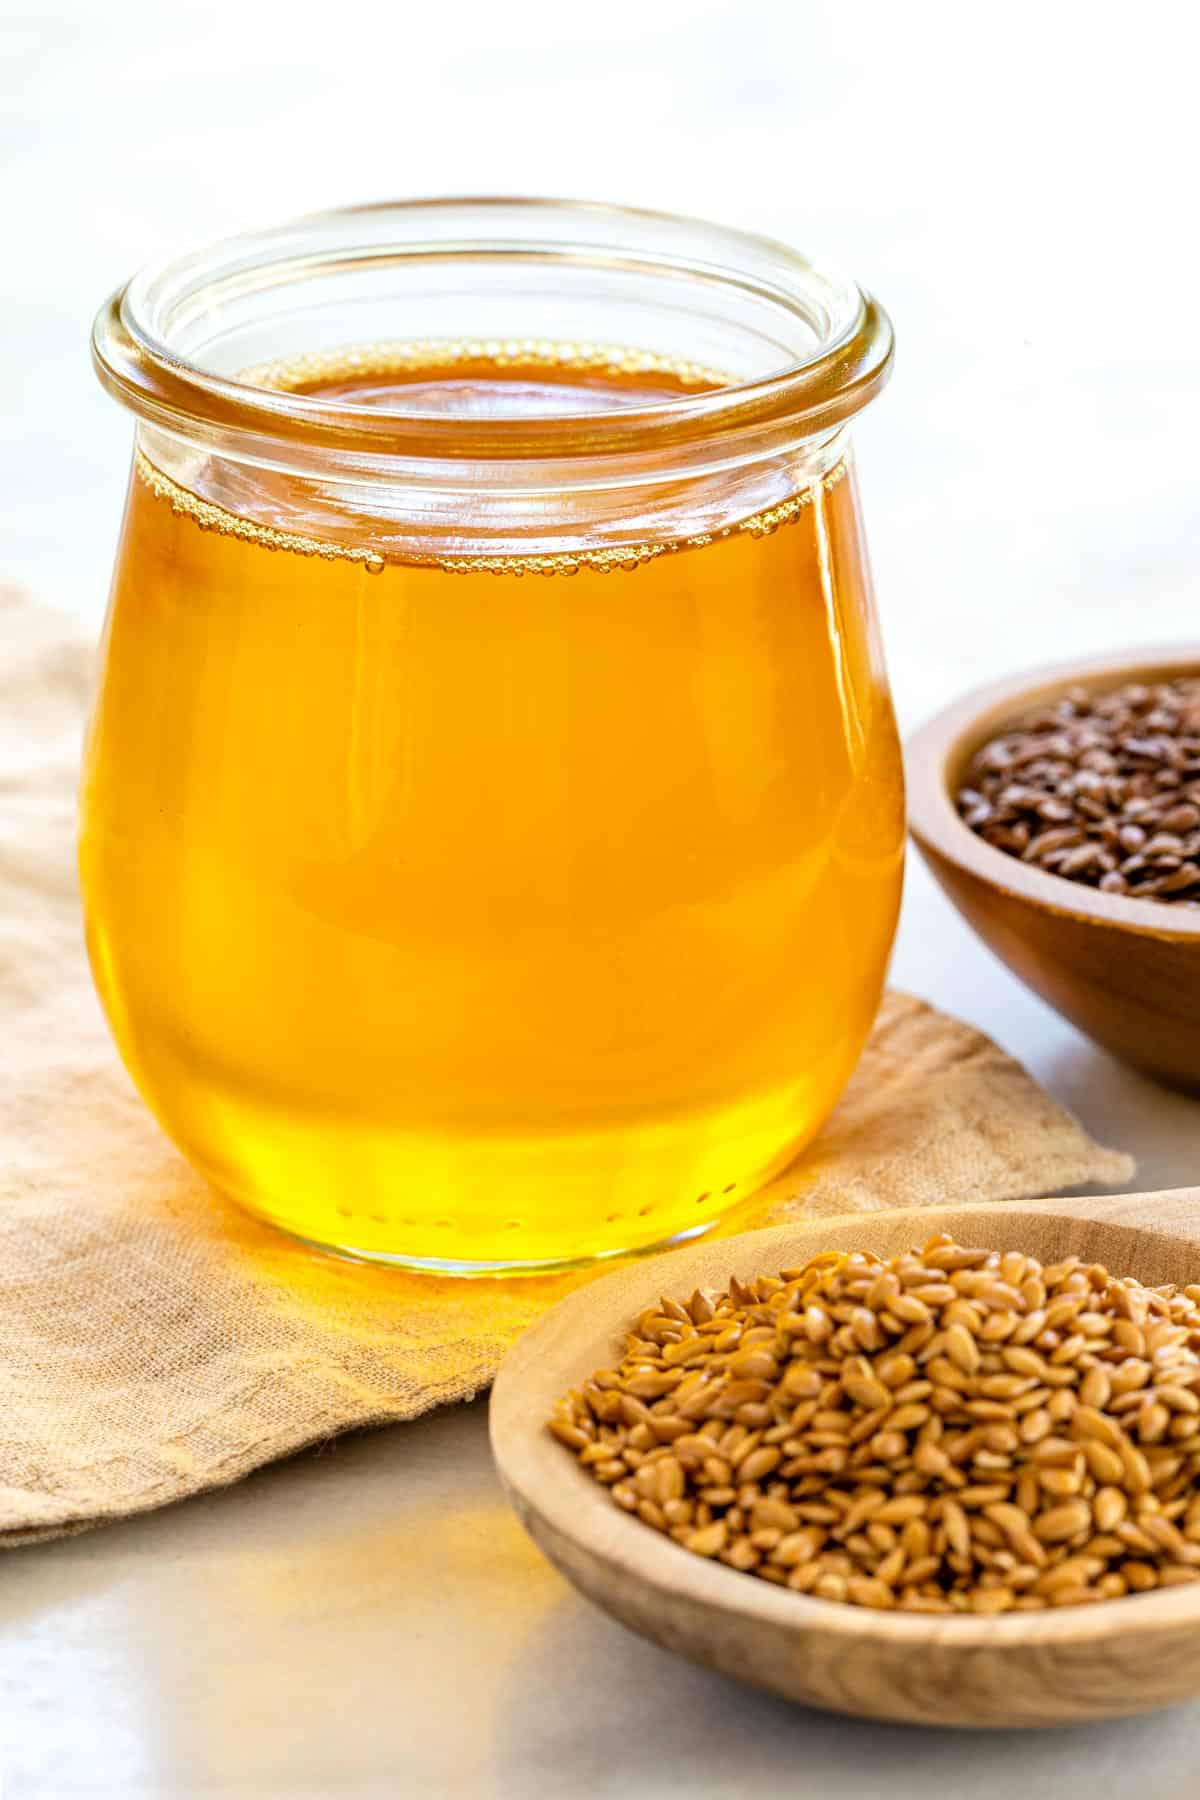 spite certain flaxseed oil benefits, it's actually not ideal for some recipes. Learn how you should and shouldn't use it in the kitchen. #flaxseed #flaxseedoil